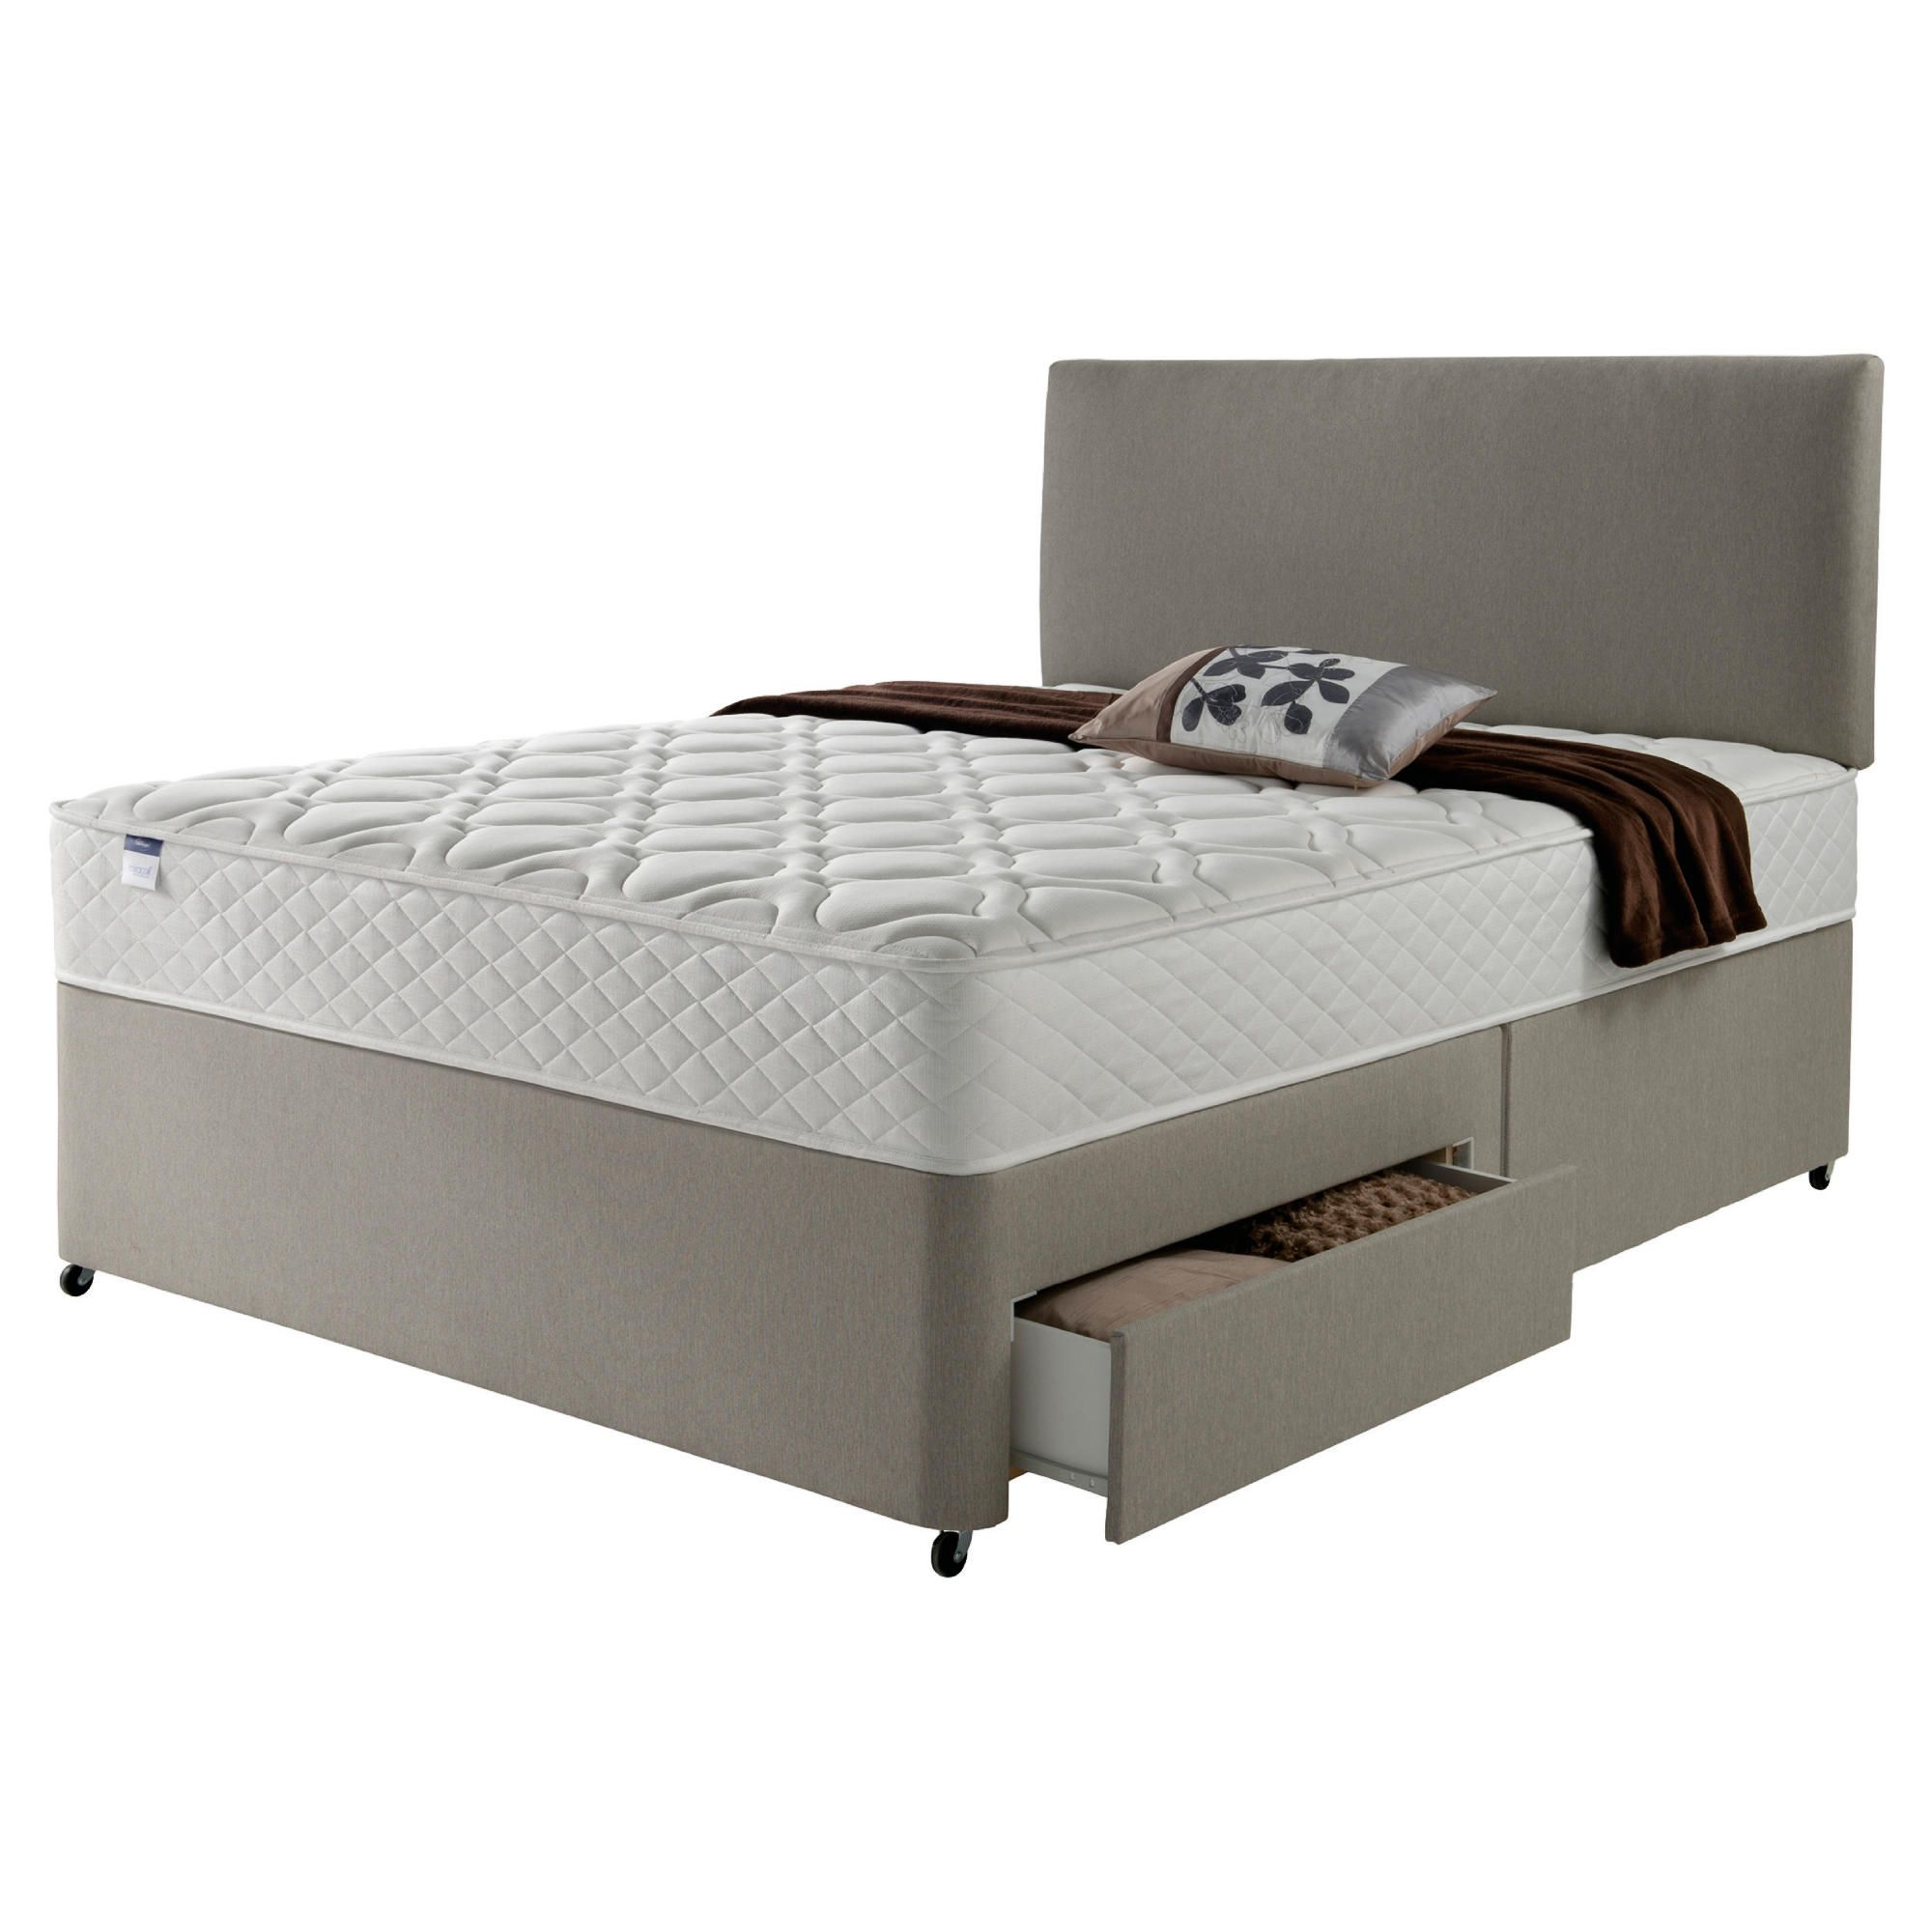 Qty Dam Pocket Sprung Double Mattress 1000 1000 Pocket